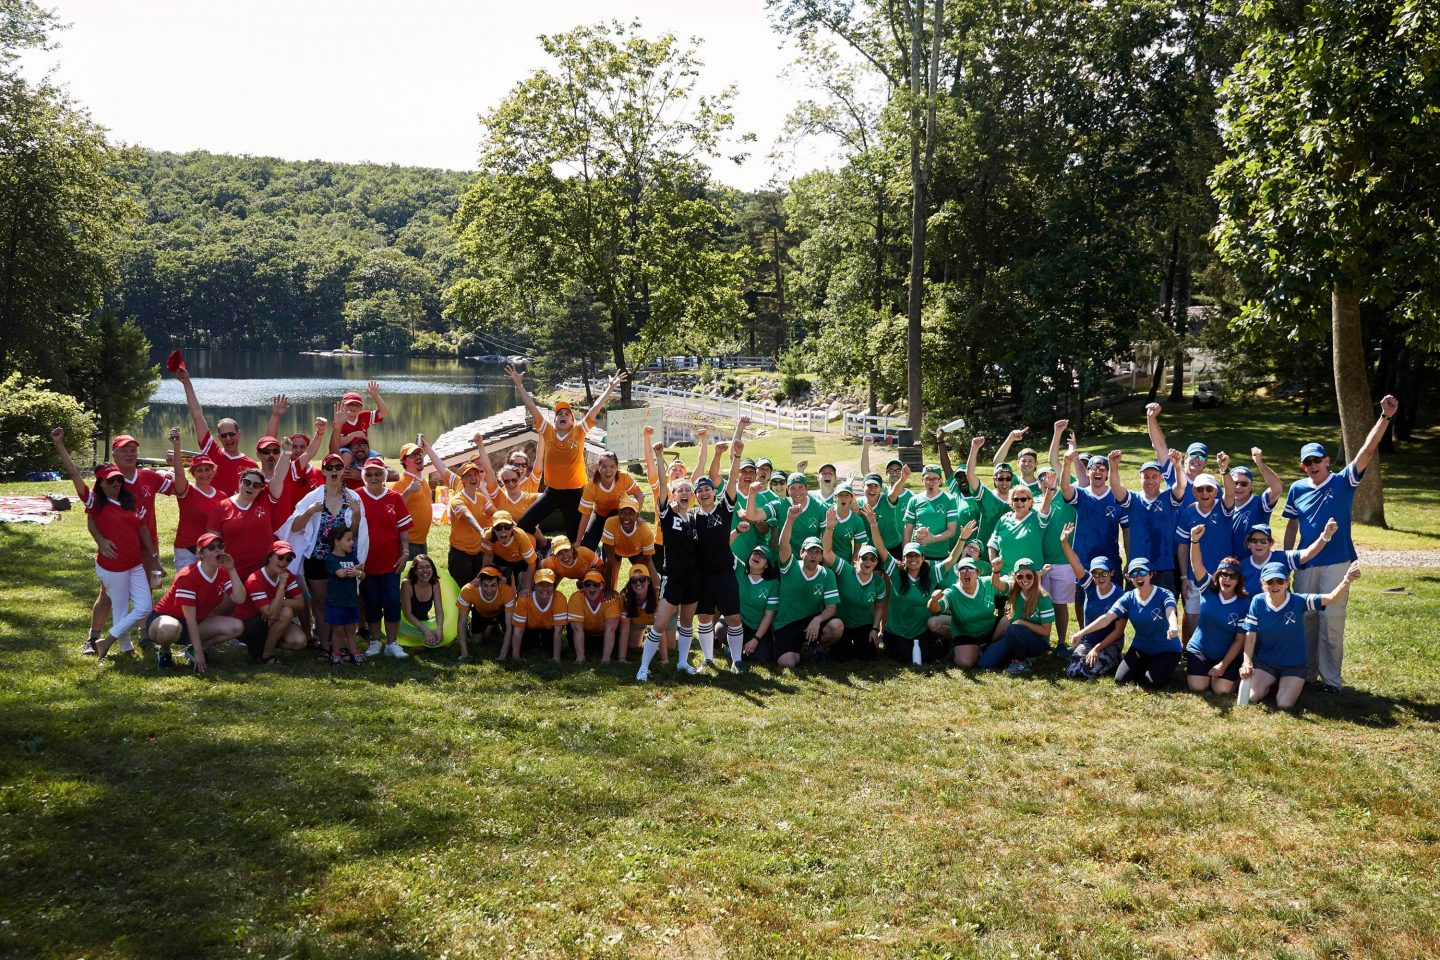 All the teams at field day at this camp-themed wedding weekend at Cedar Lakes Estate in Upstate NY, USA | Photo by Christian Oth Studios